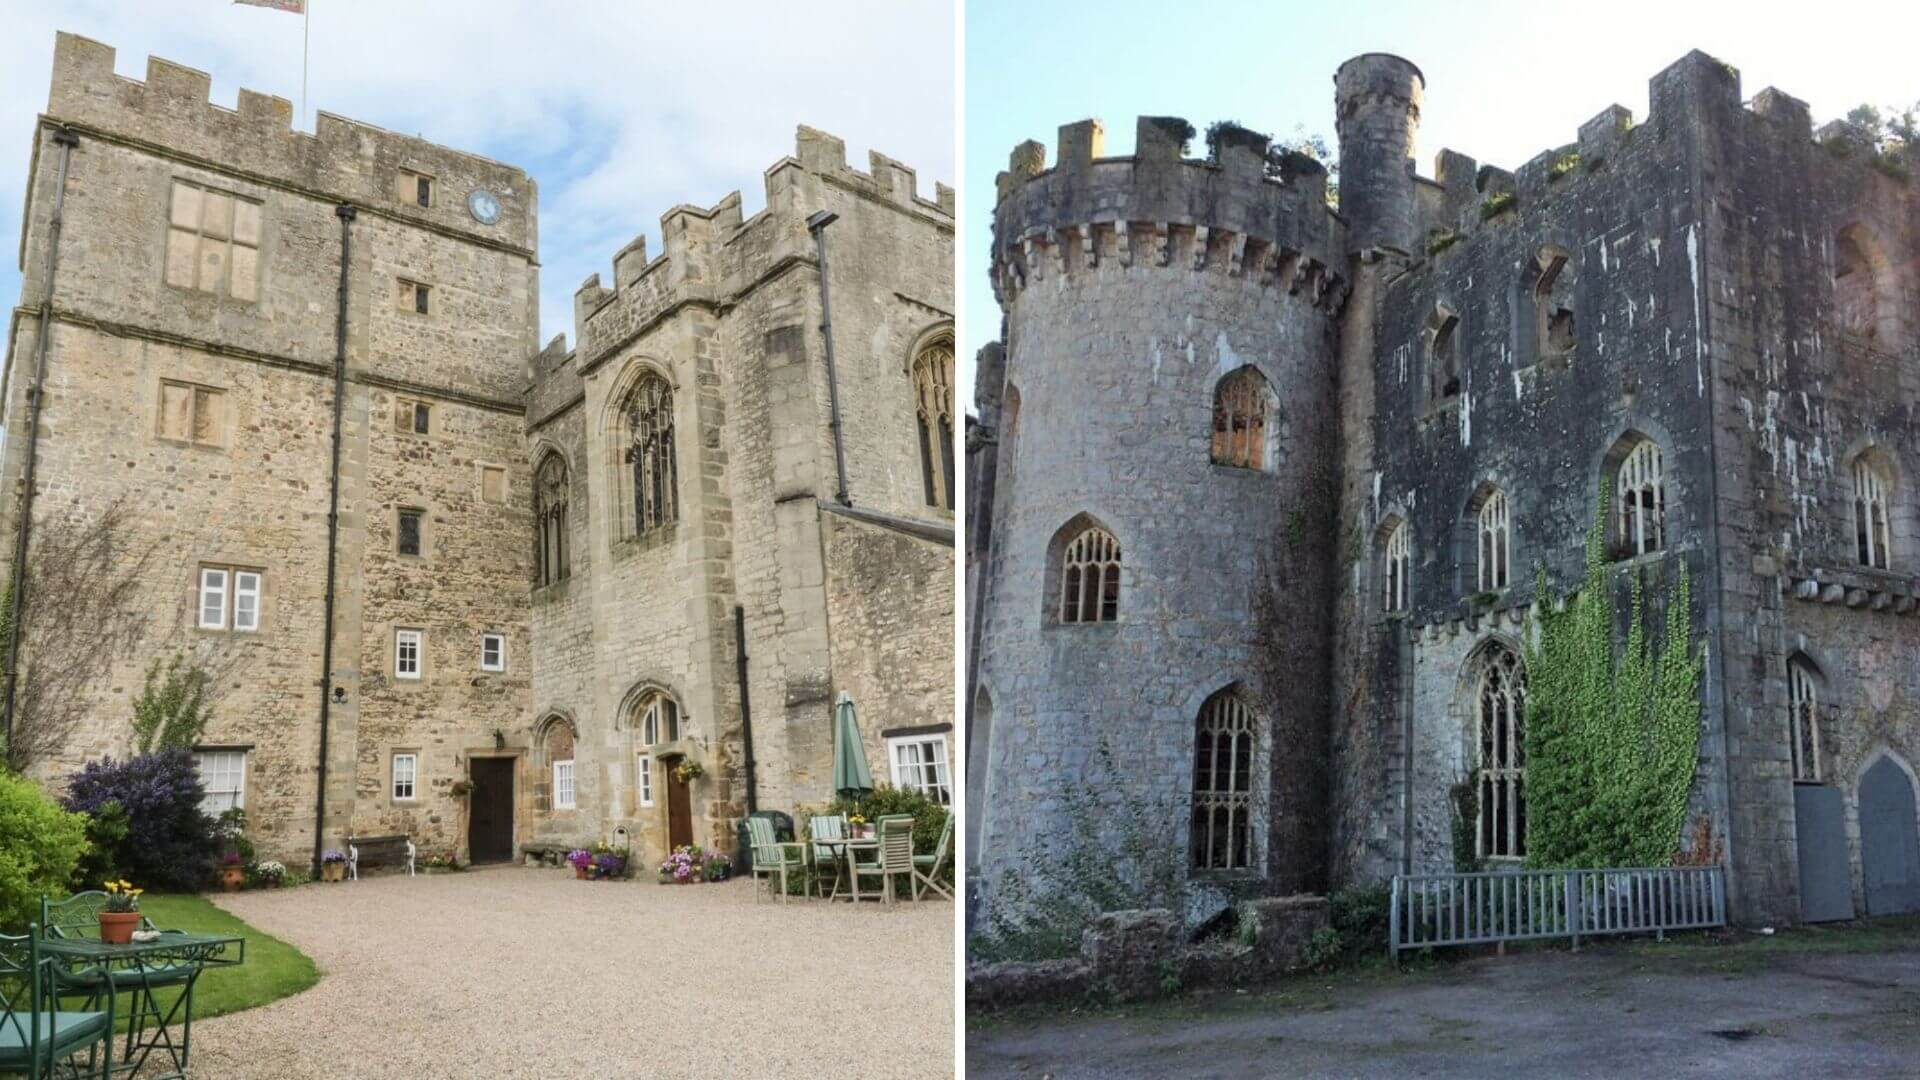 Snape Castle and Gwrych Castle